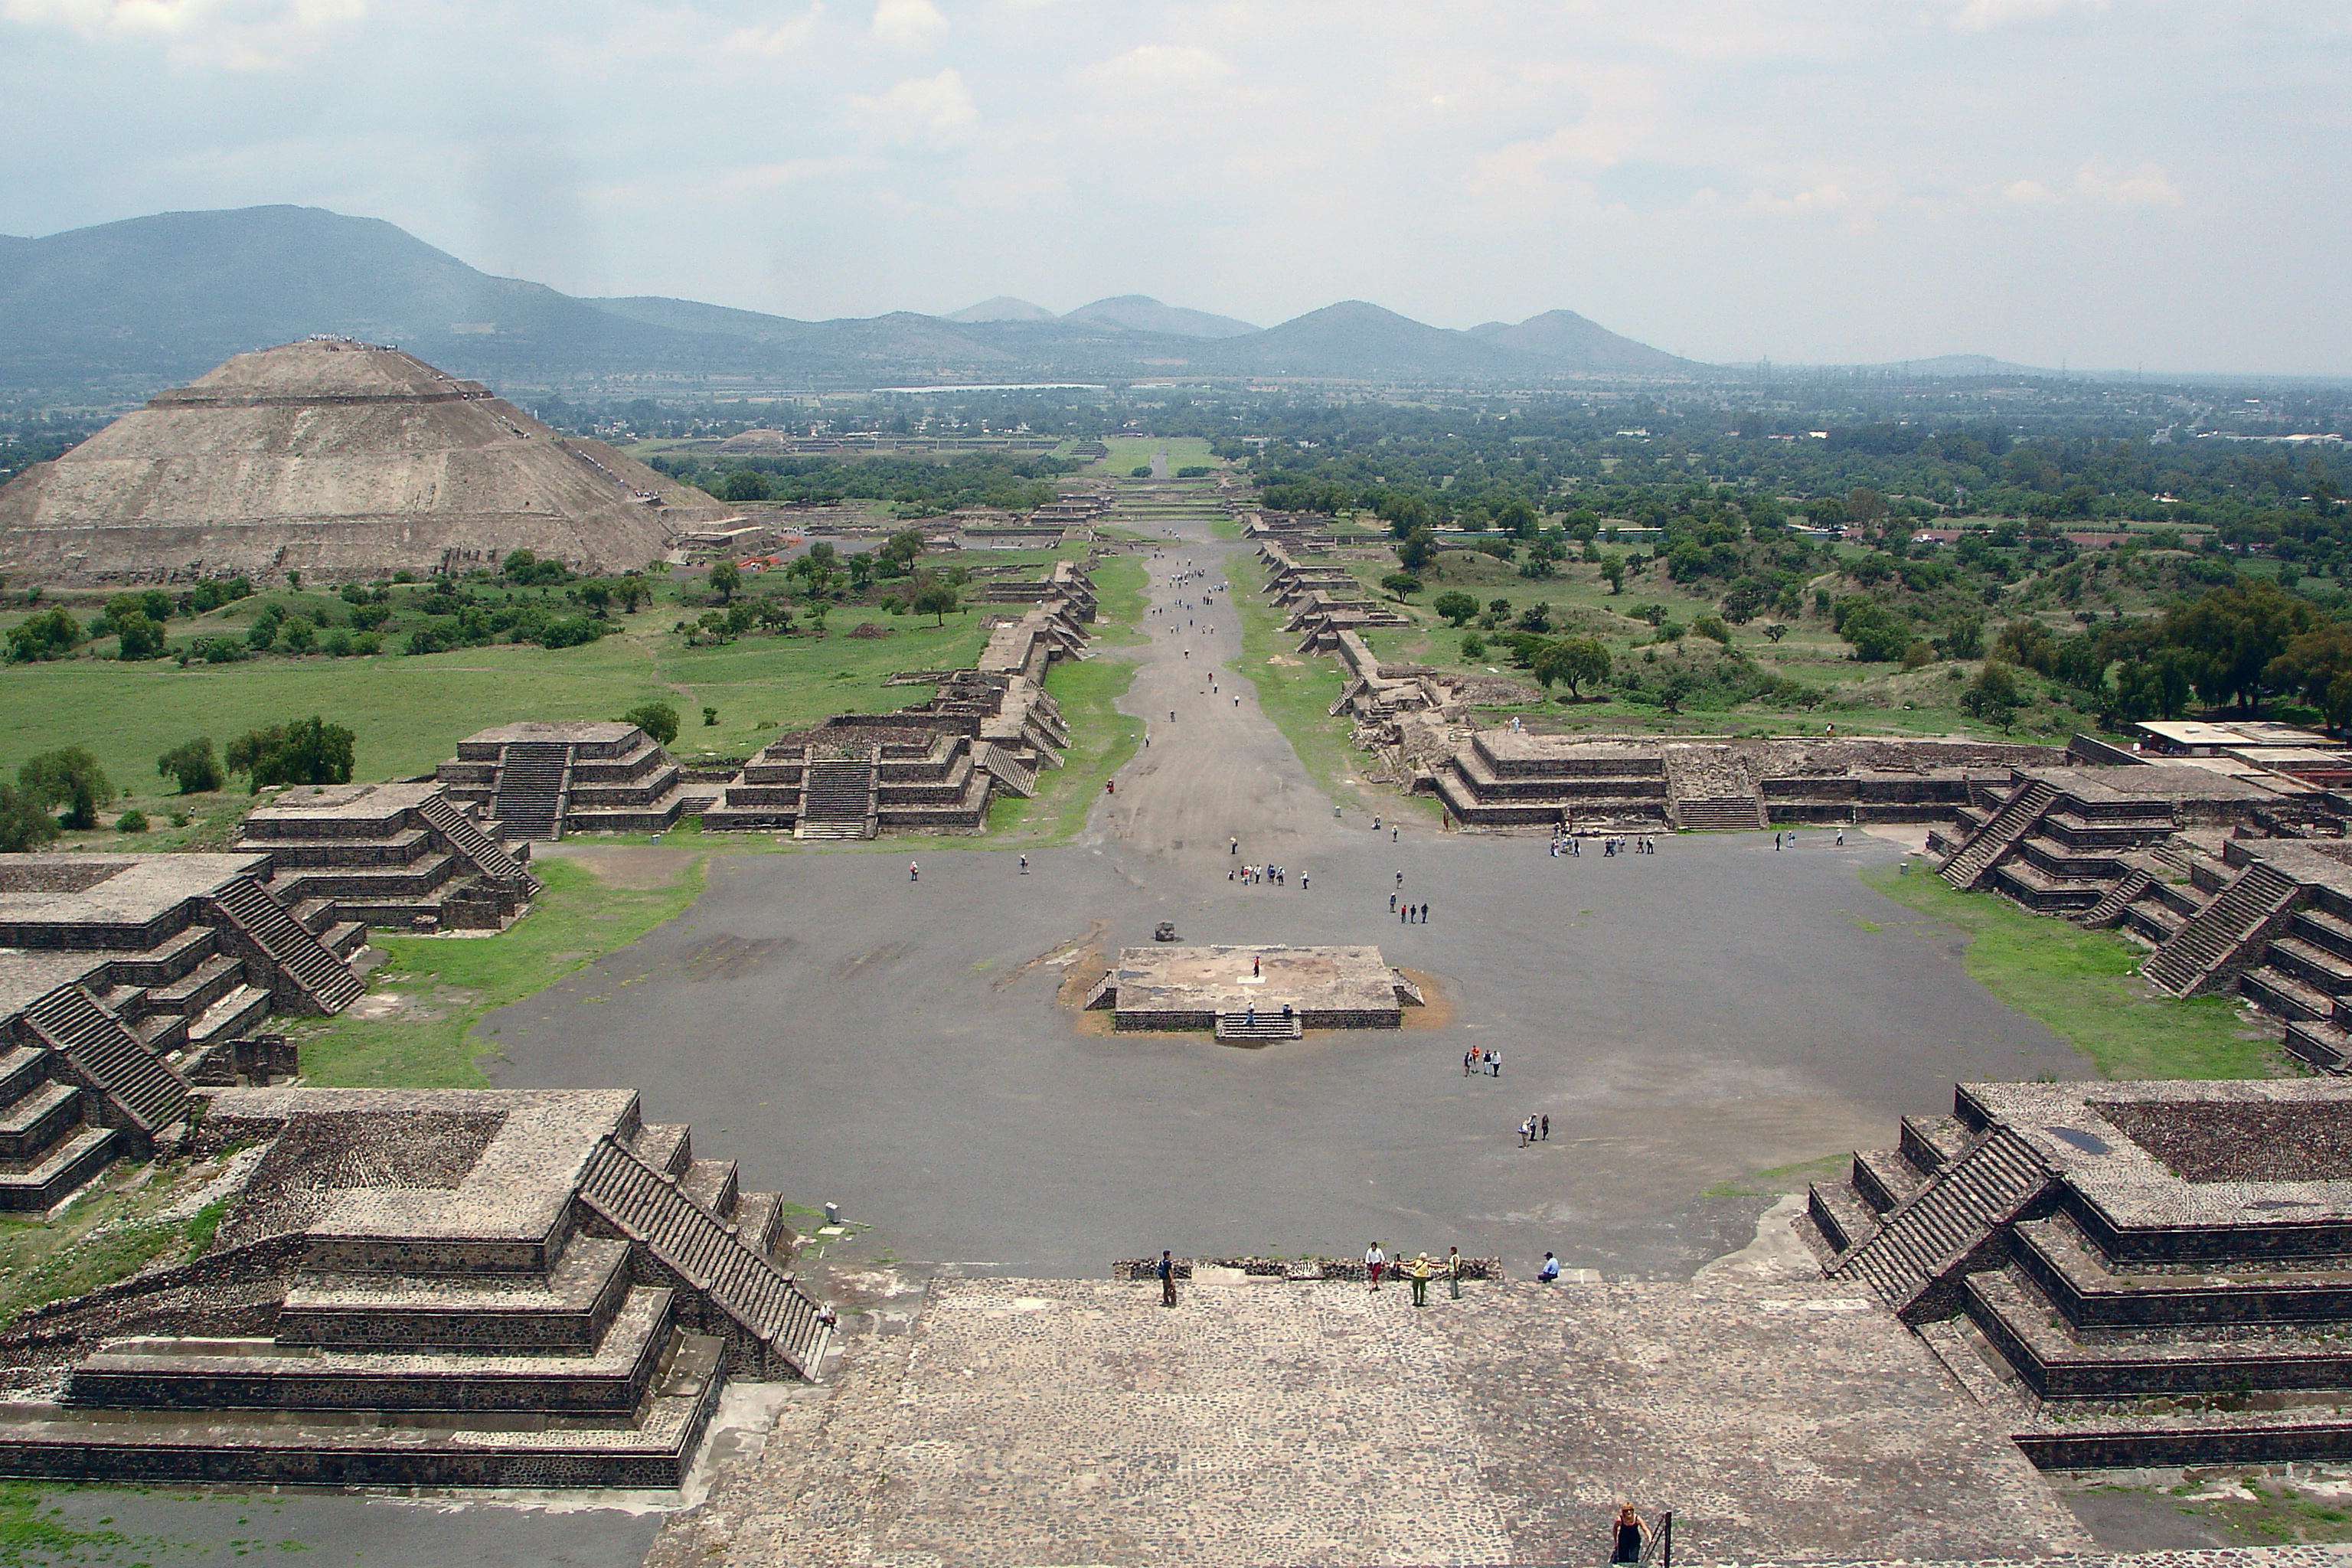 Pre-Hispanic City of Teotihuacán